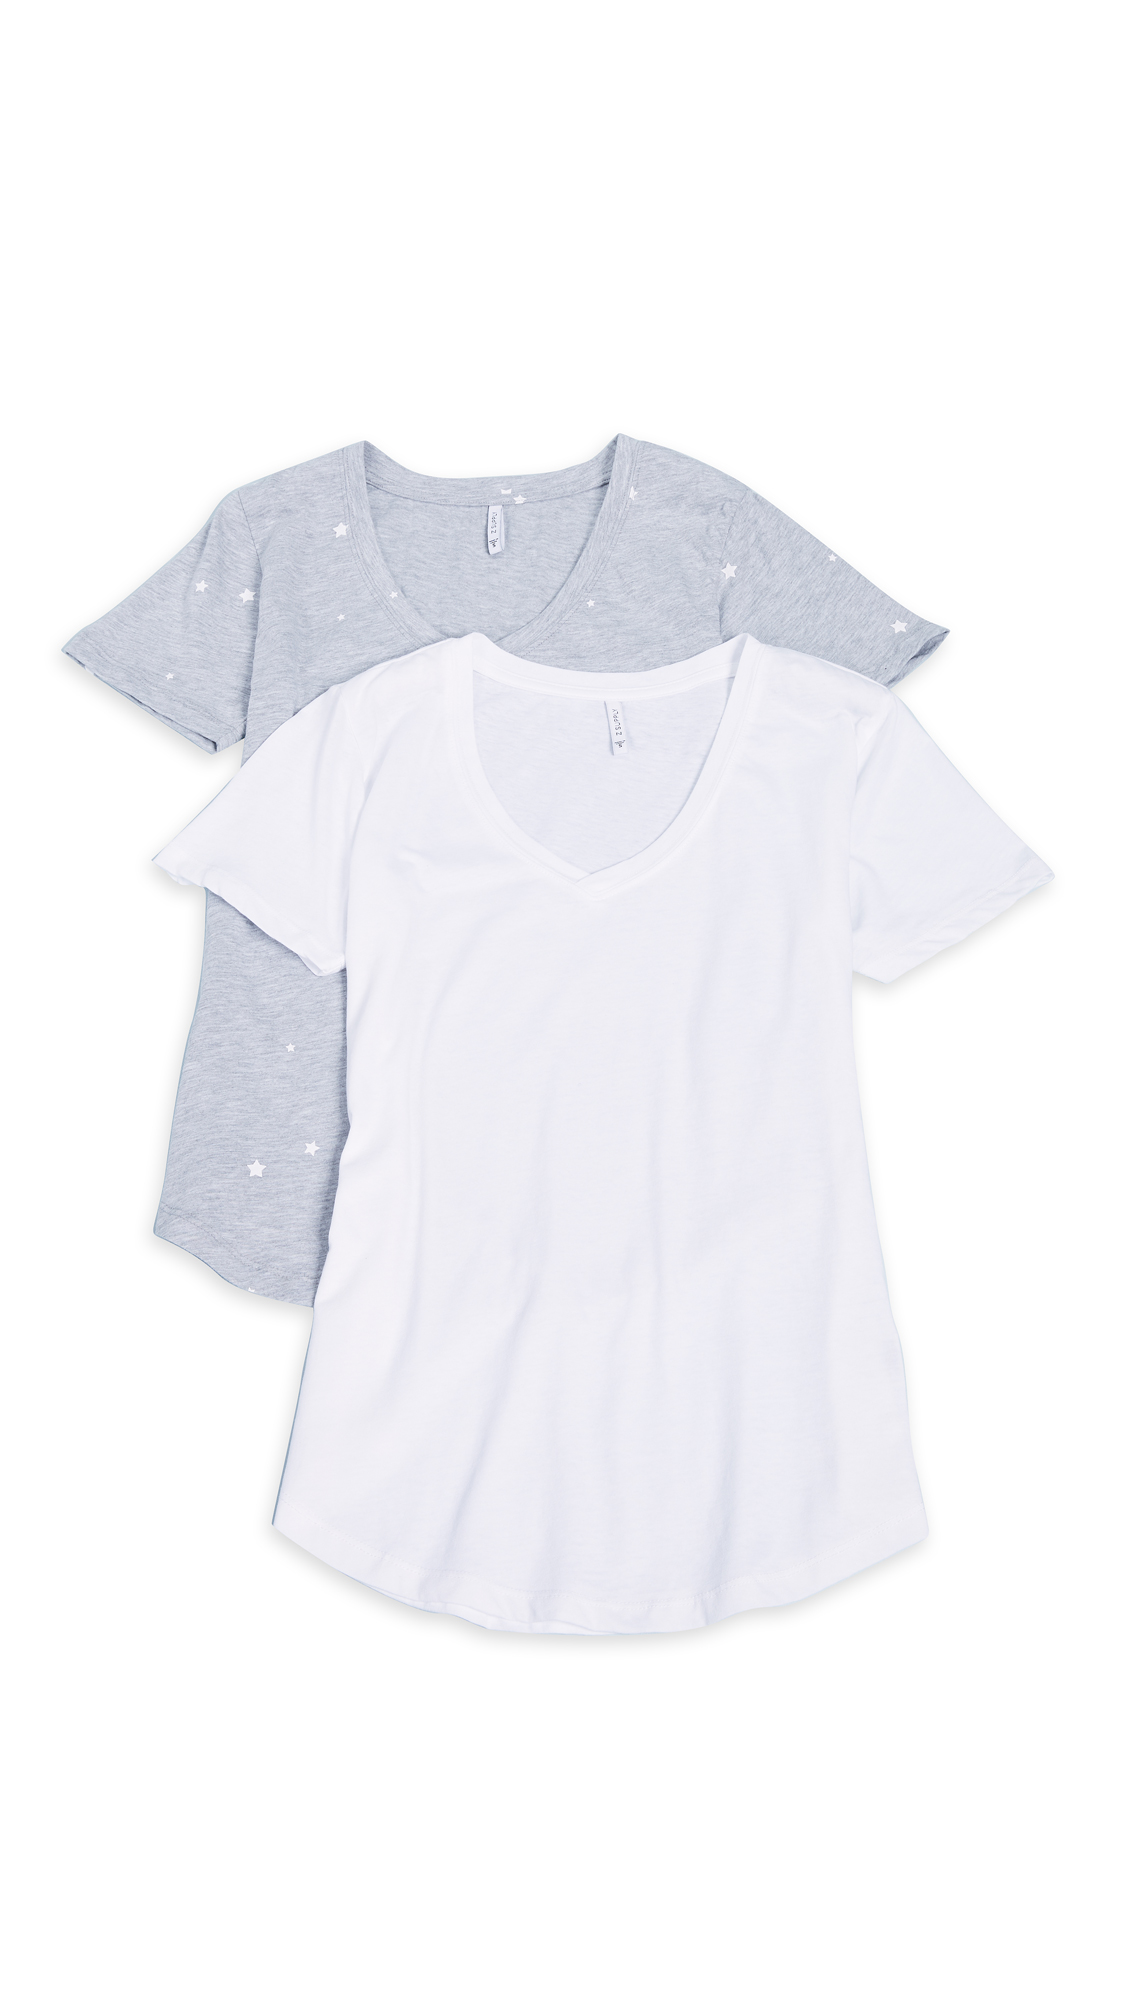 Z Supply Star & Solid Tee 2 Pack In Heather/White